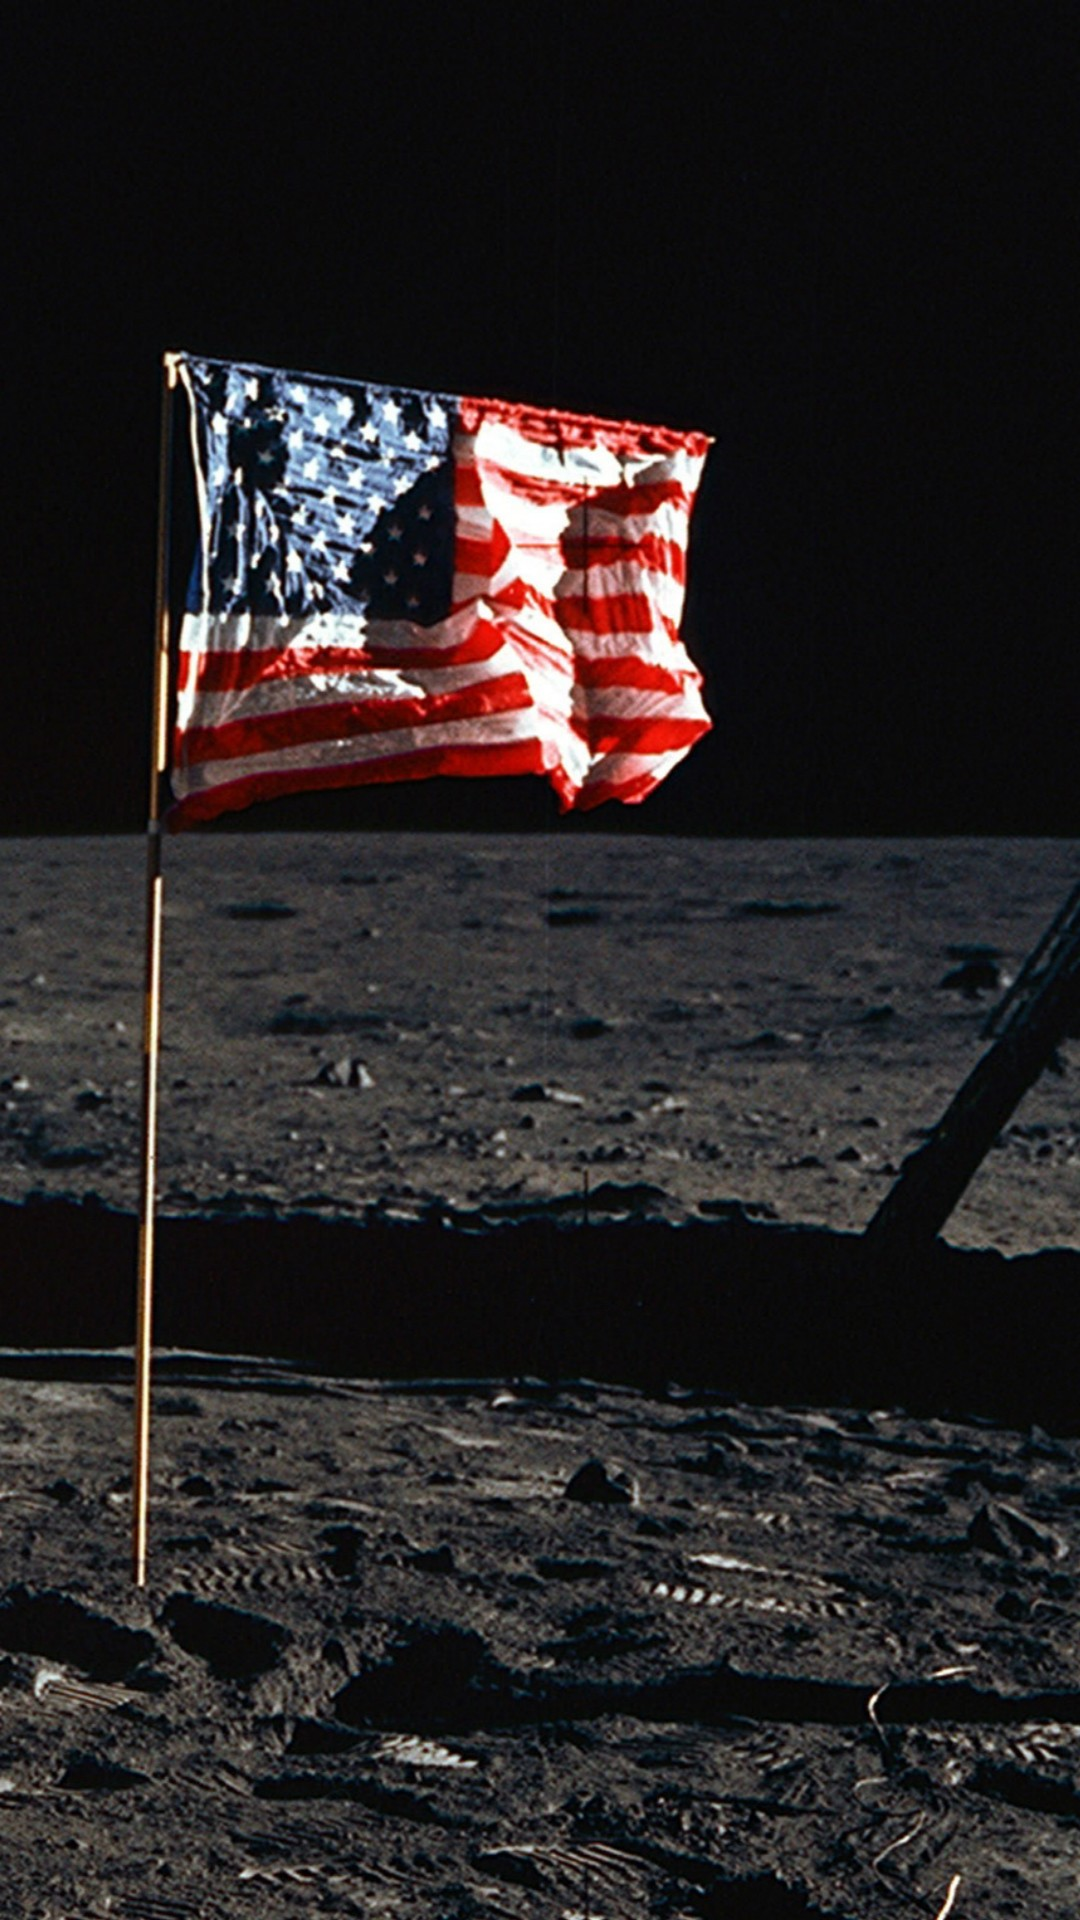 Wallpaper American Flag For Iphone With High-resolution - 2 People On The Moon , HD Wallpaper & Backgrounds